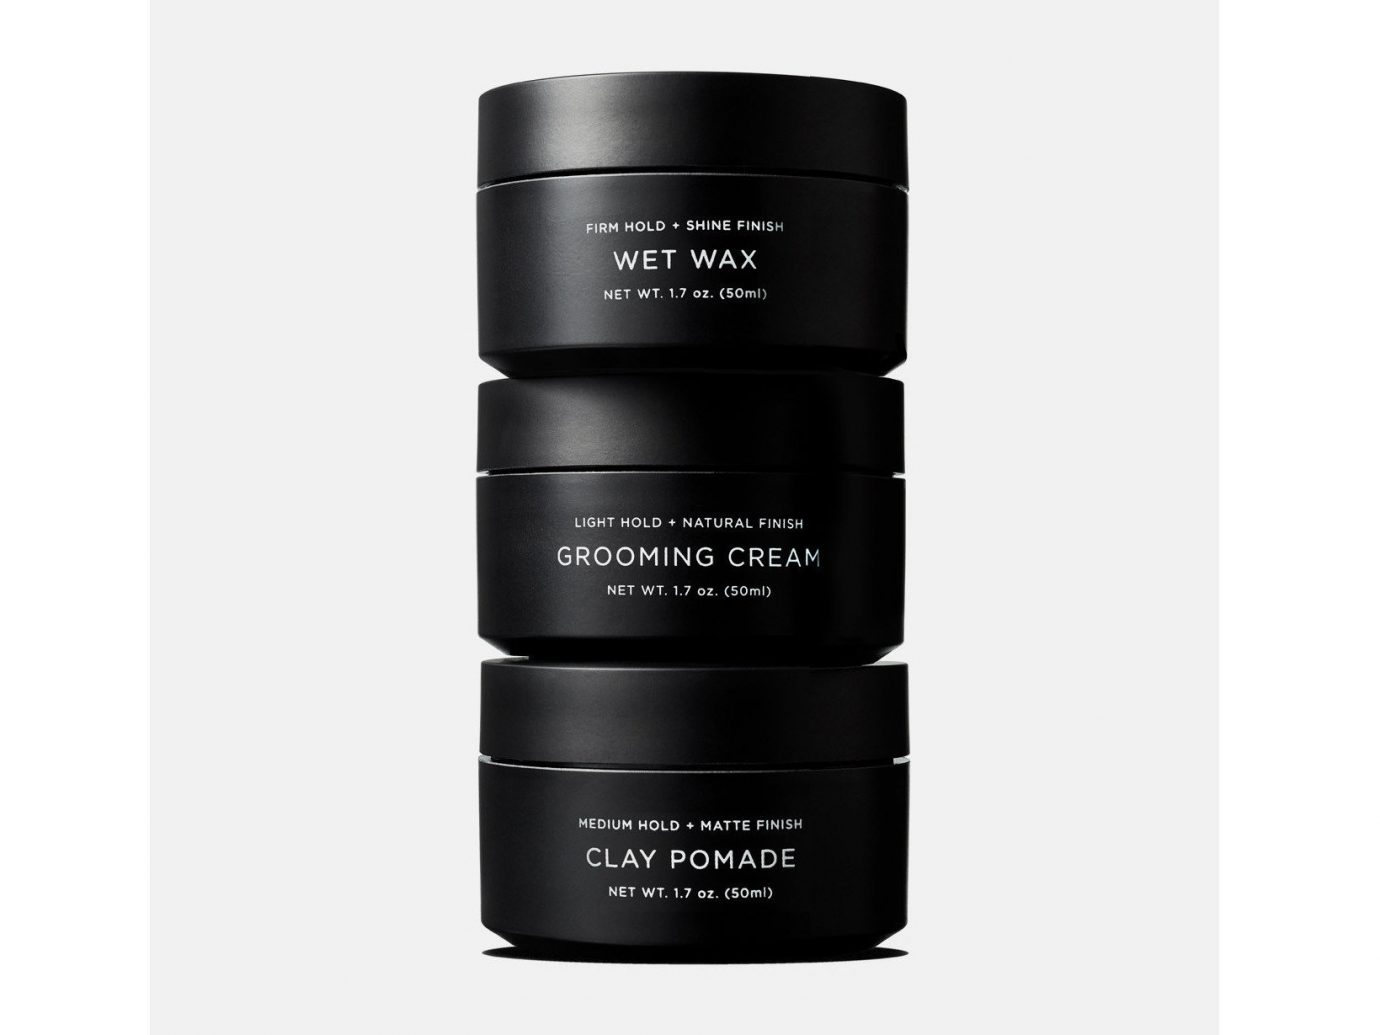 Gift Guides Travel Shop toiletry product product design camera lens